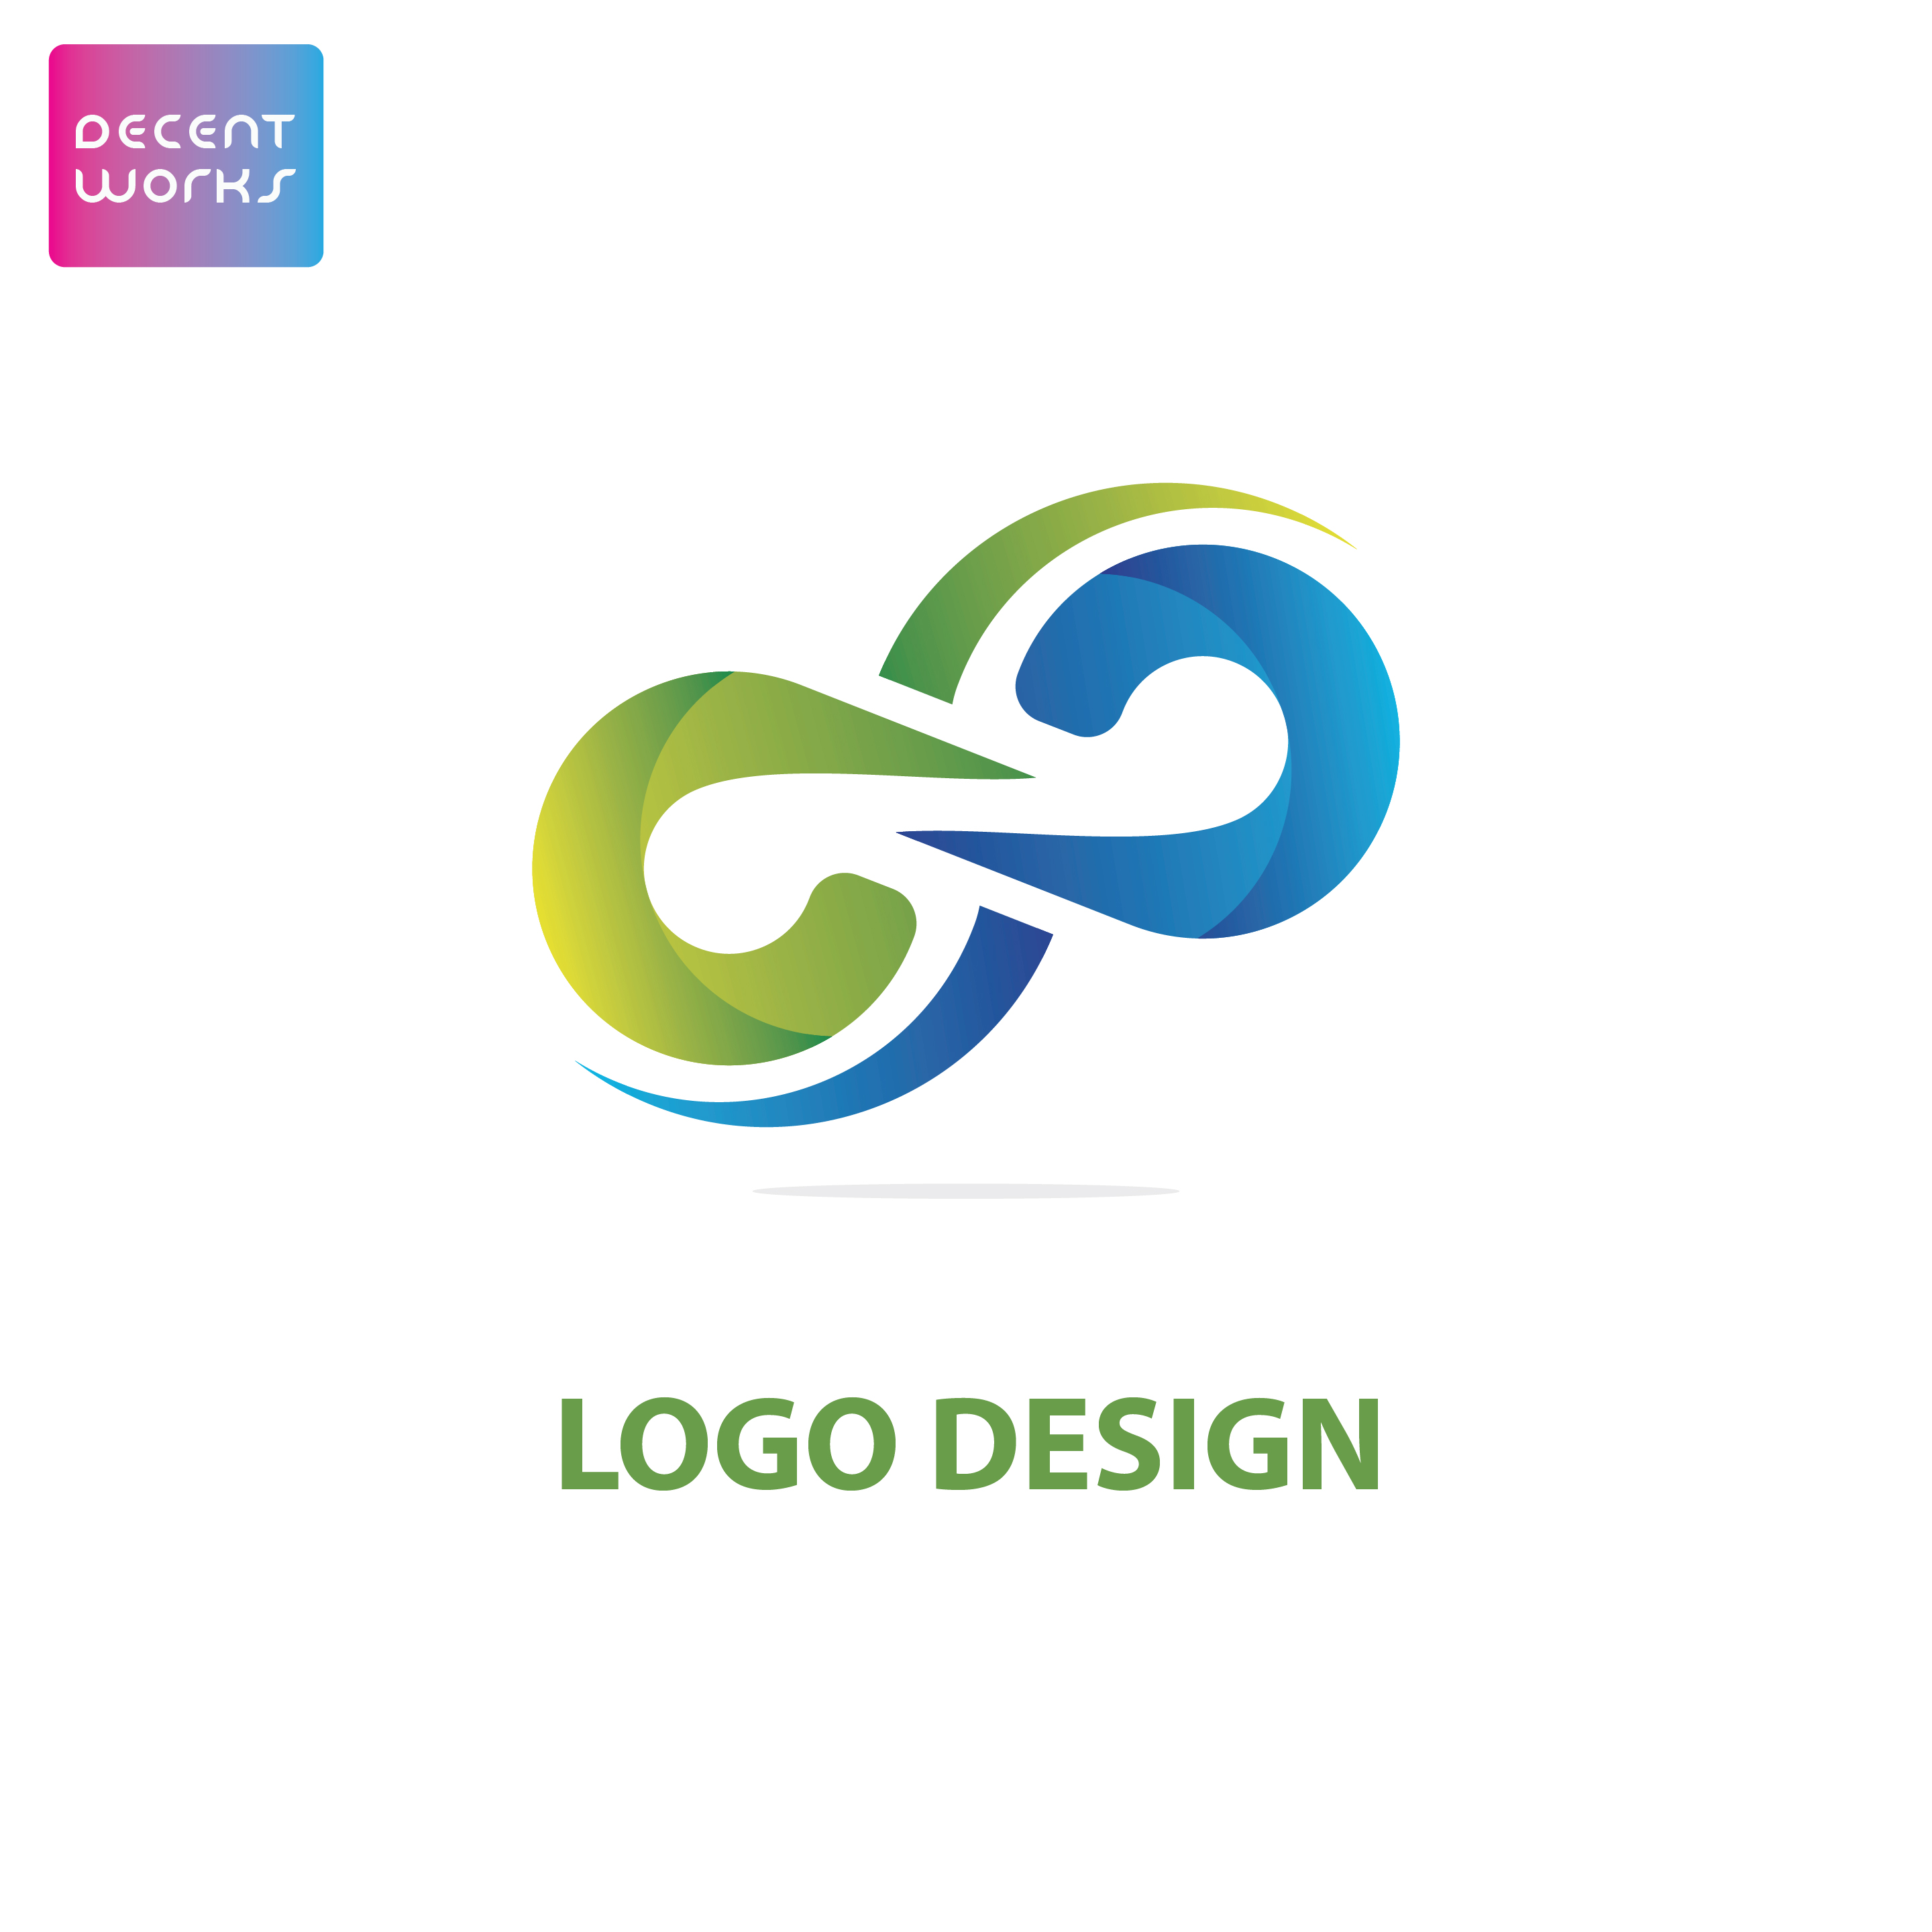 4 logo with business card High quality & Transparent background in ...